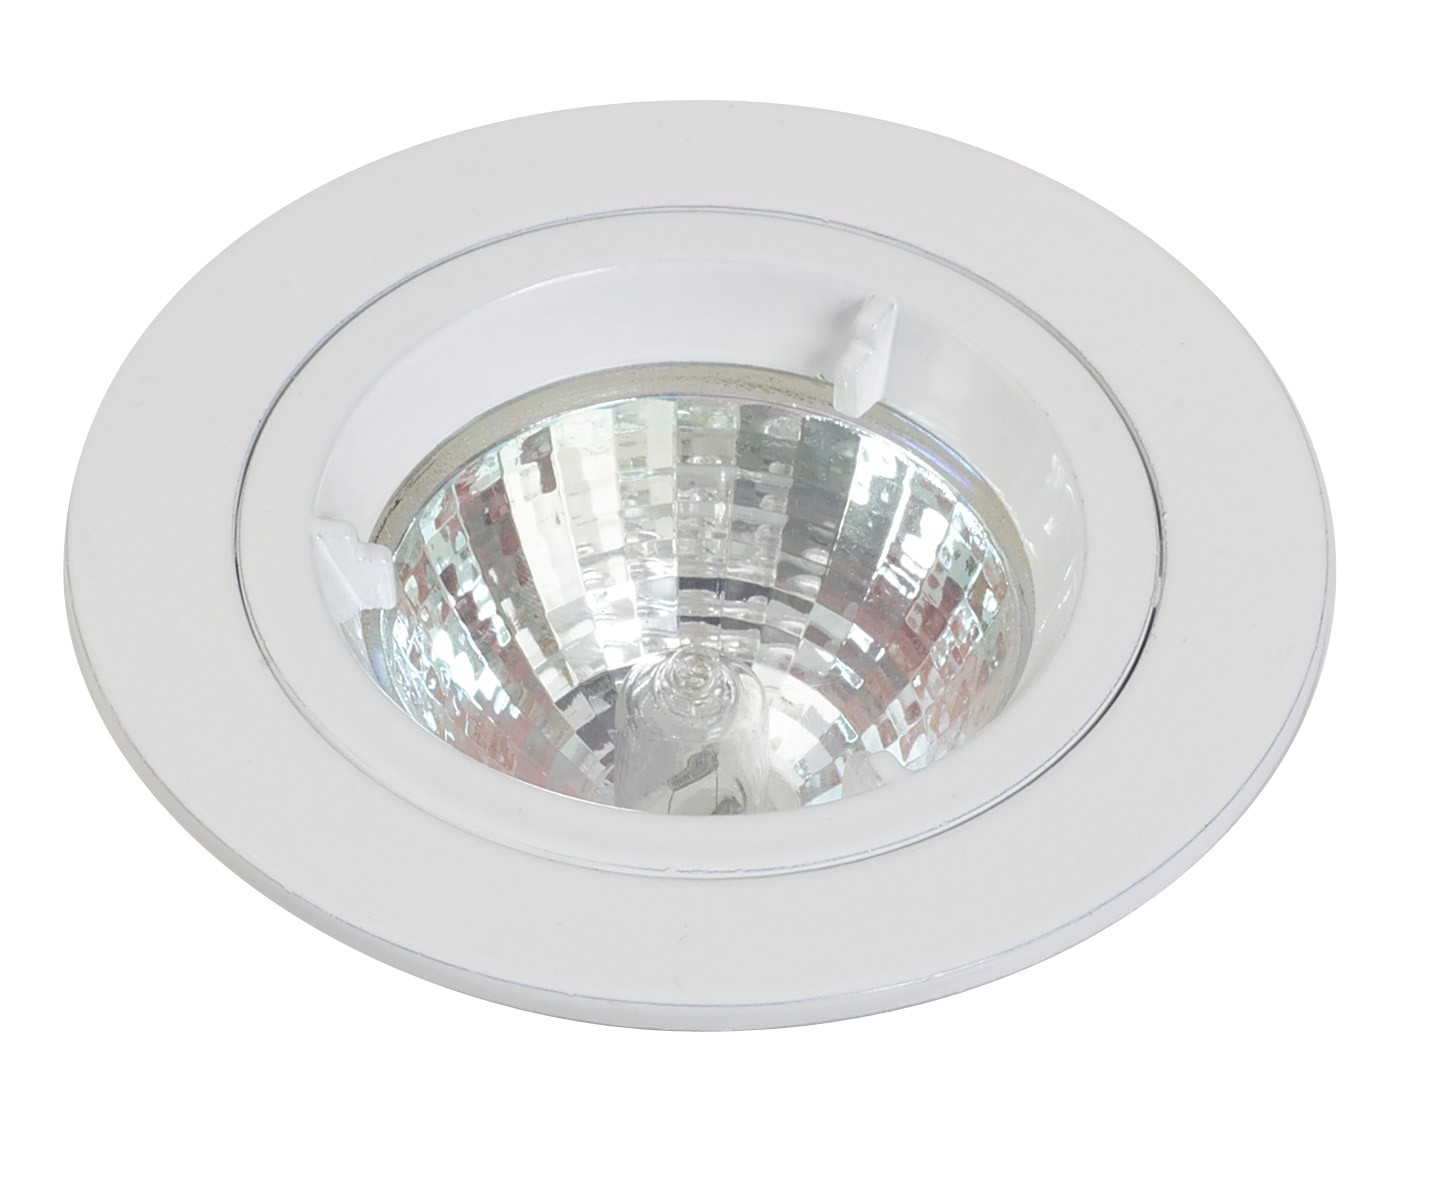 Ceiling downlight mains cast fixed stainless steel